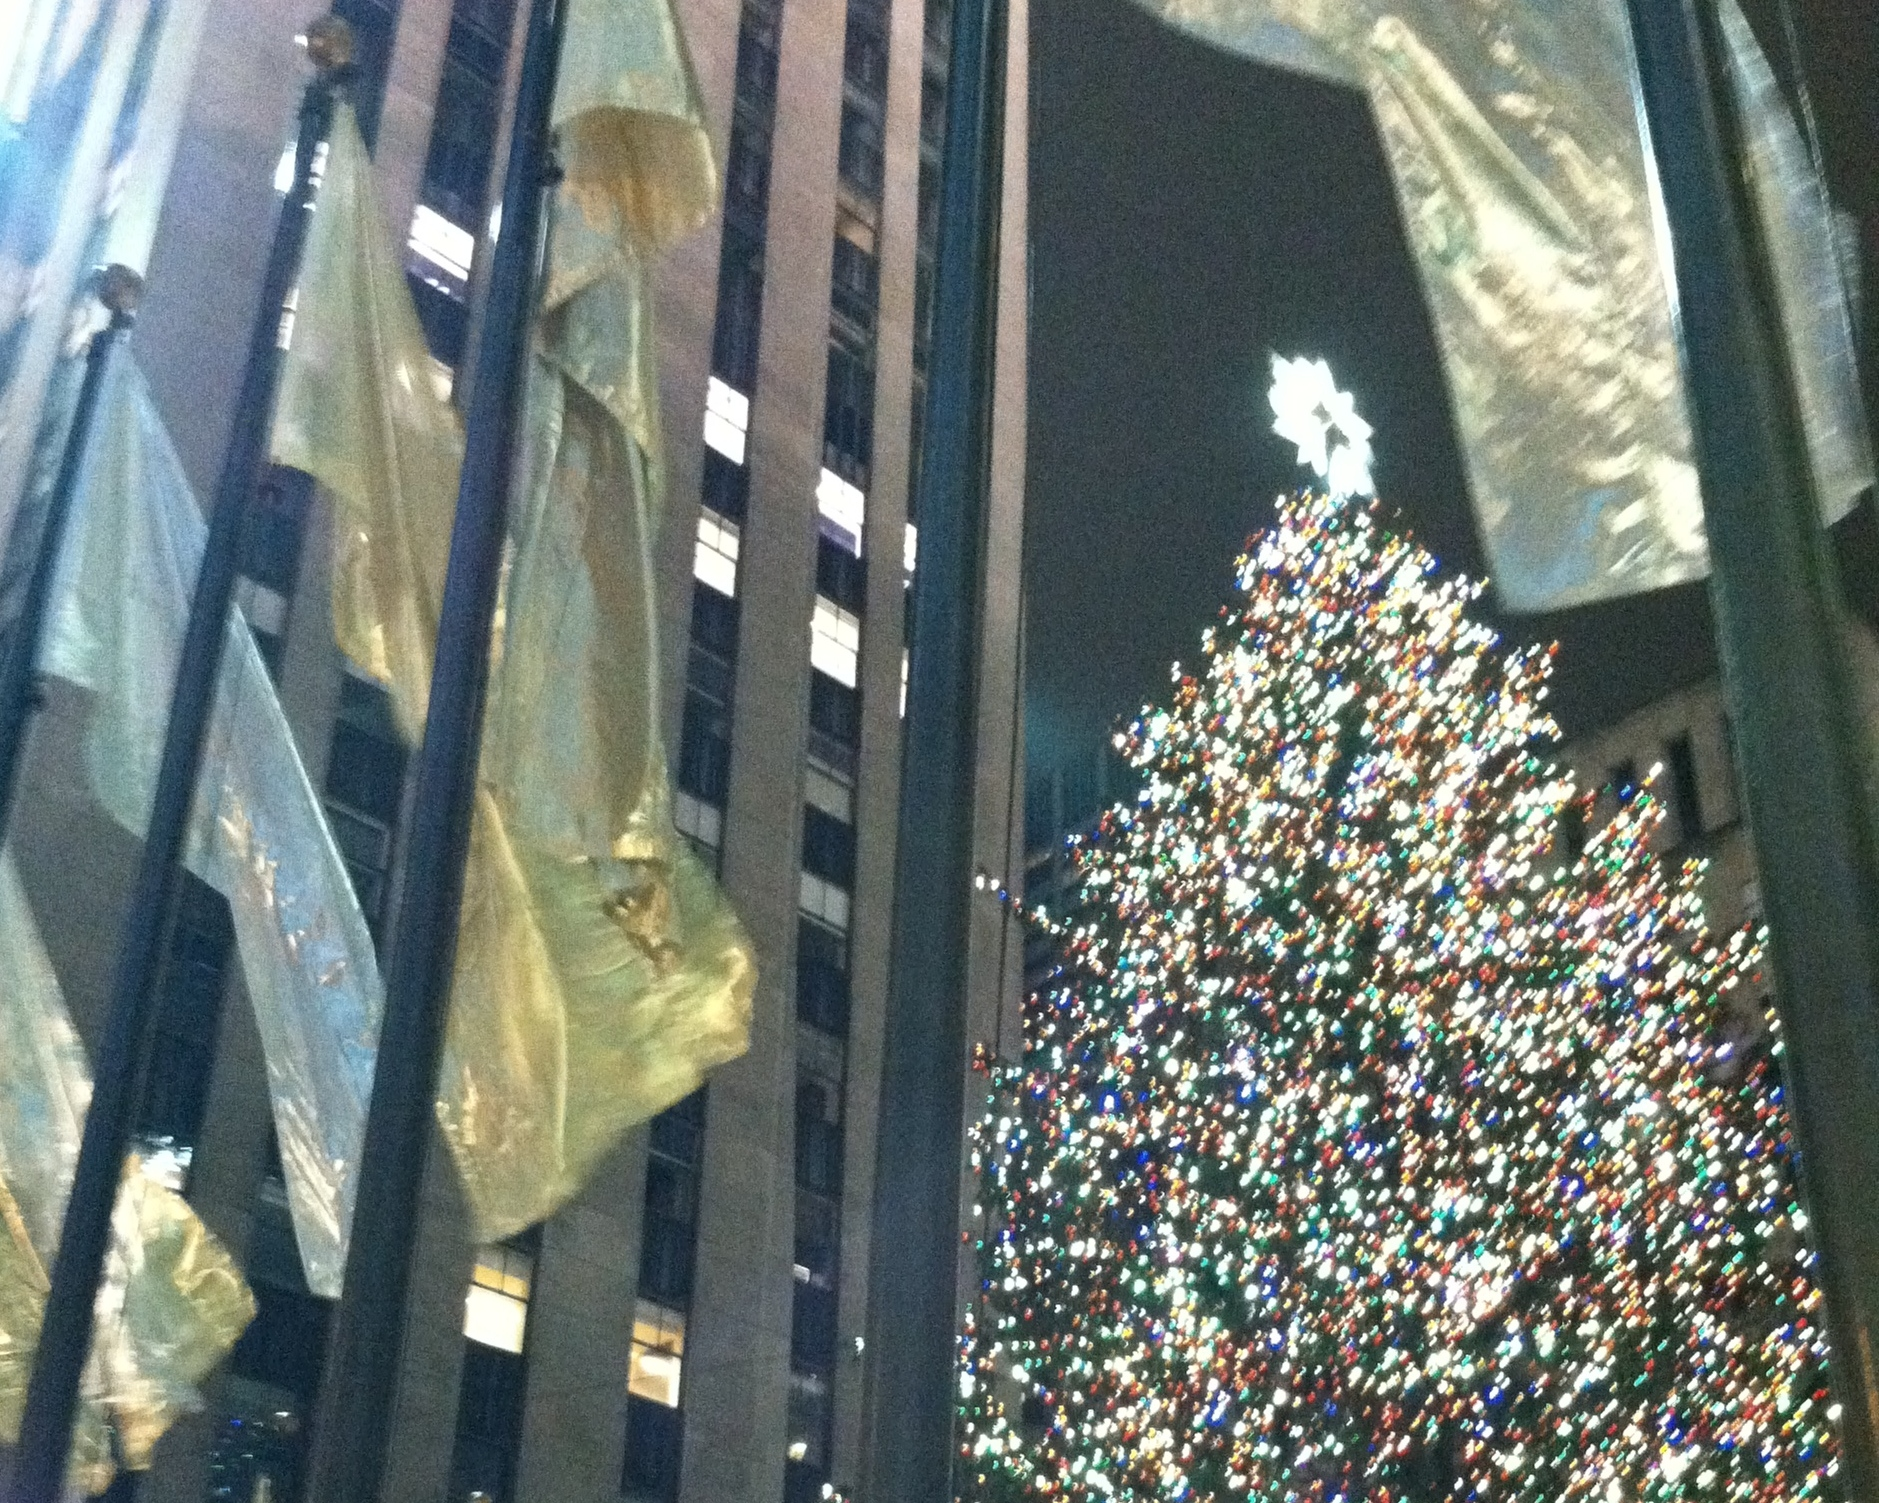 New York's 30 Rock Plaza - fleeting memory from 2010